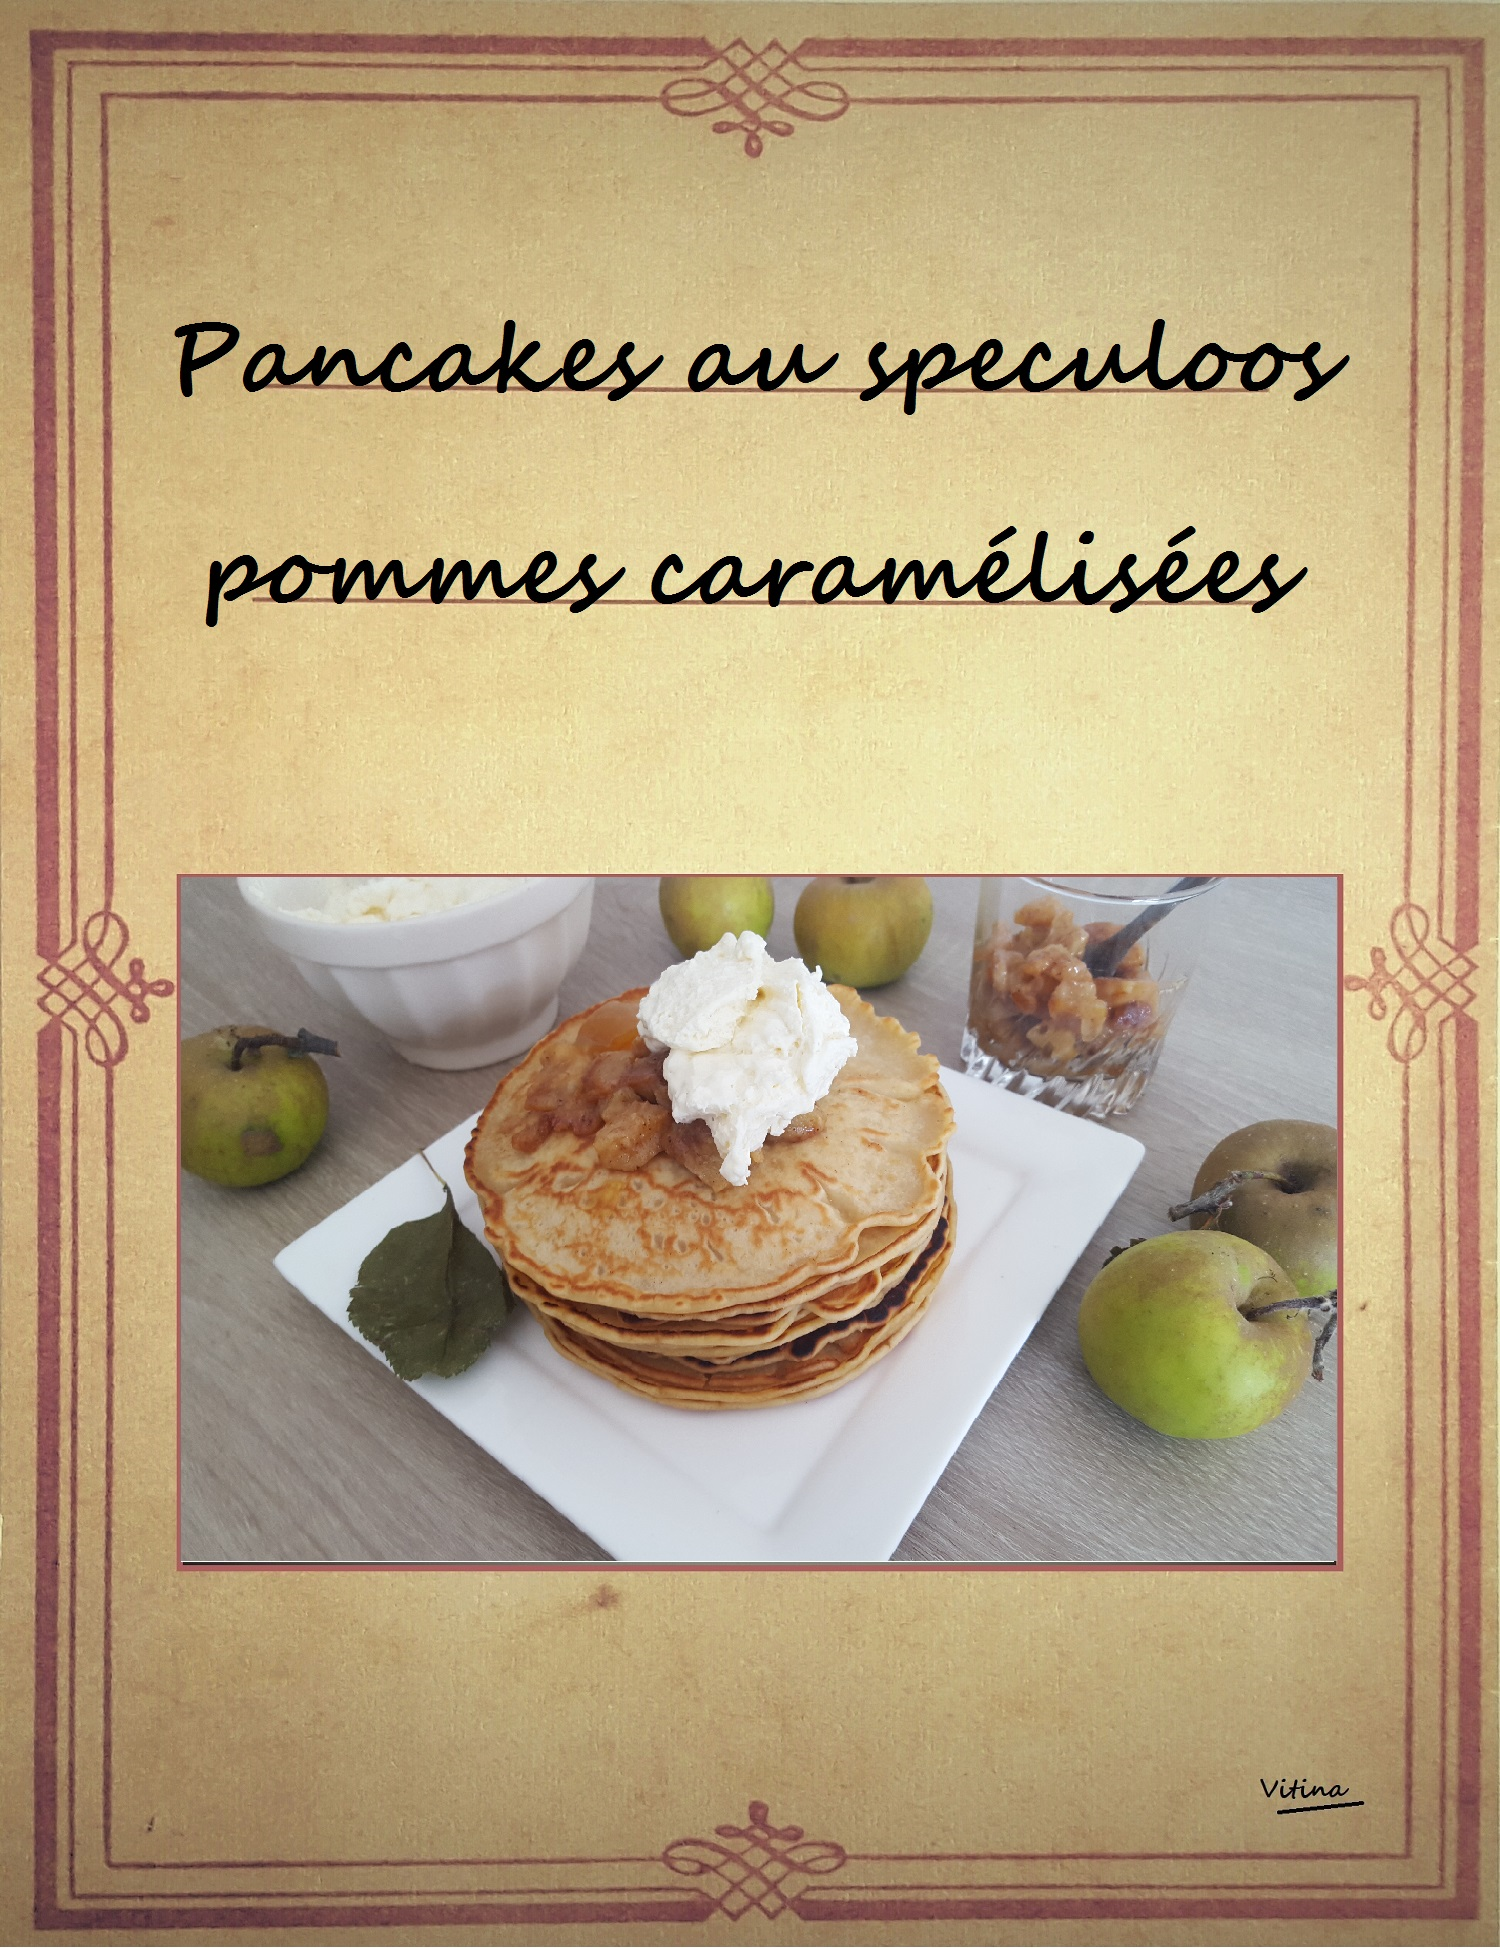 pancakes-speculoos-et-pommes-caramelisees